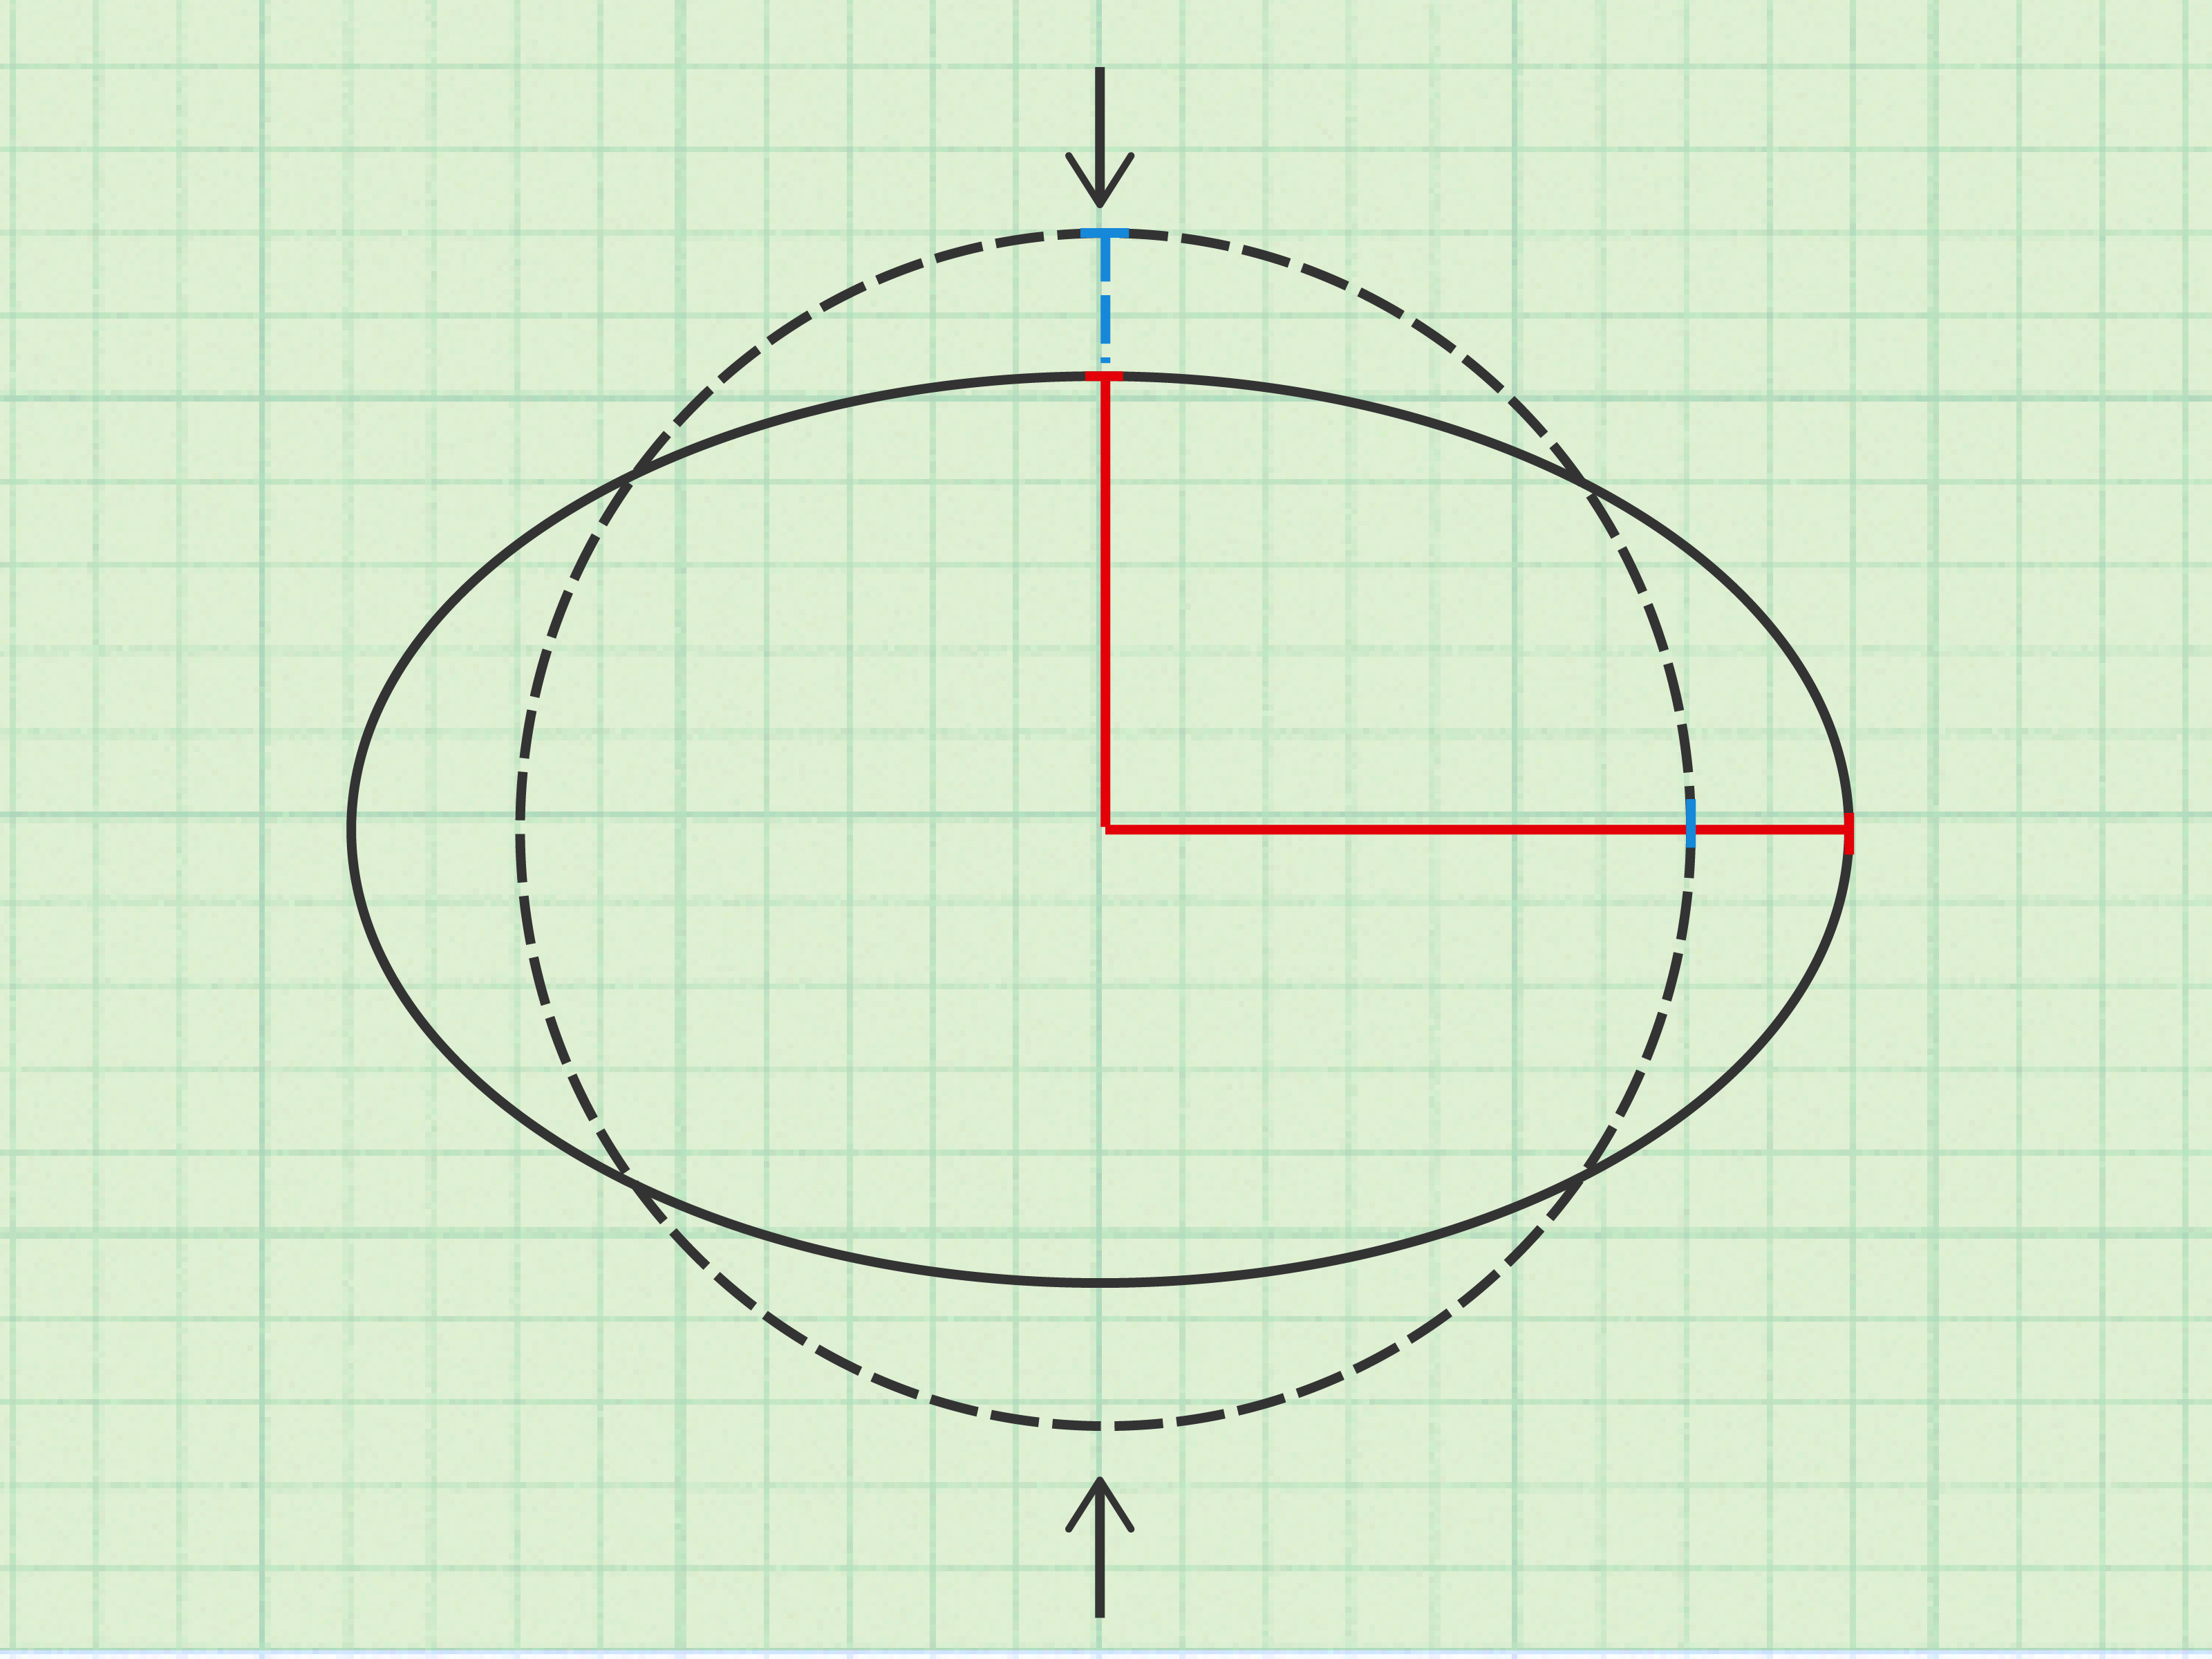 How To Calculate Radius Of A Circle Radius Of A Circle With 2 Points  Calculator